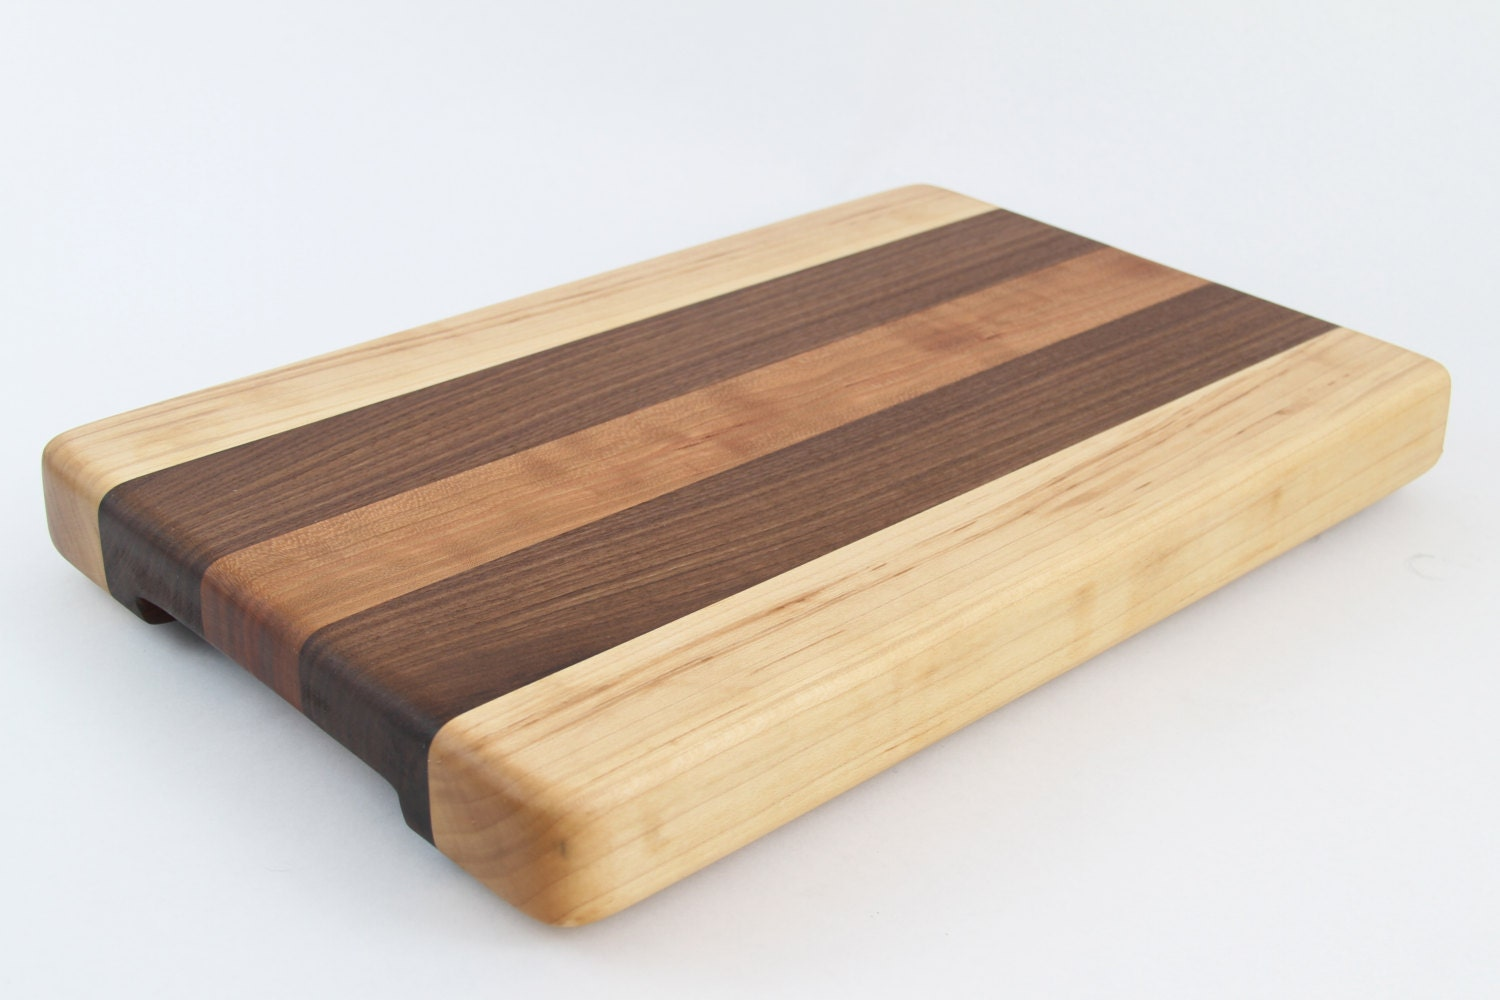 Handcrafted wood cutting board edge grain walnut cherry and maple